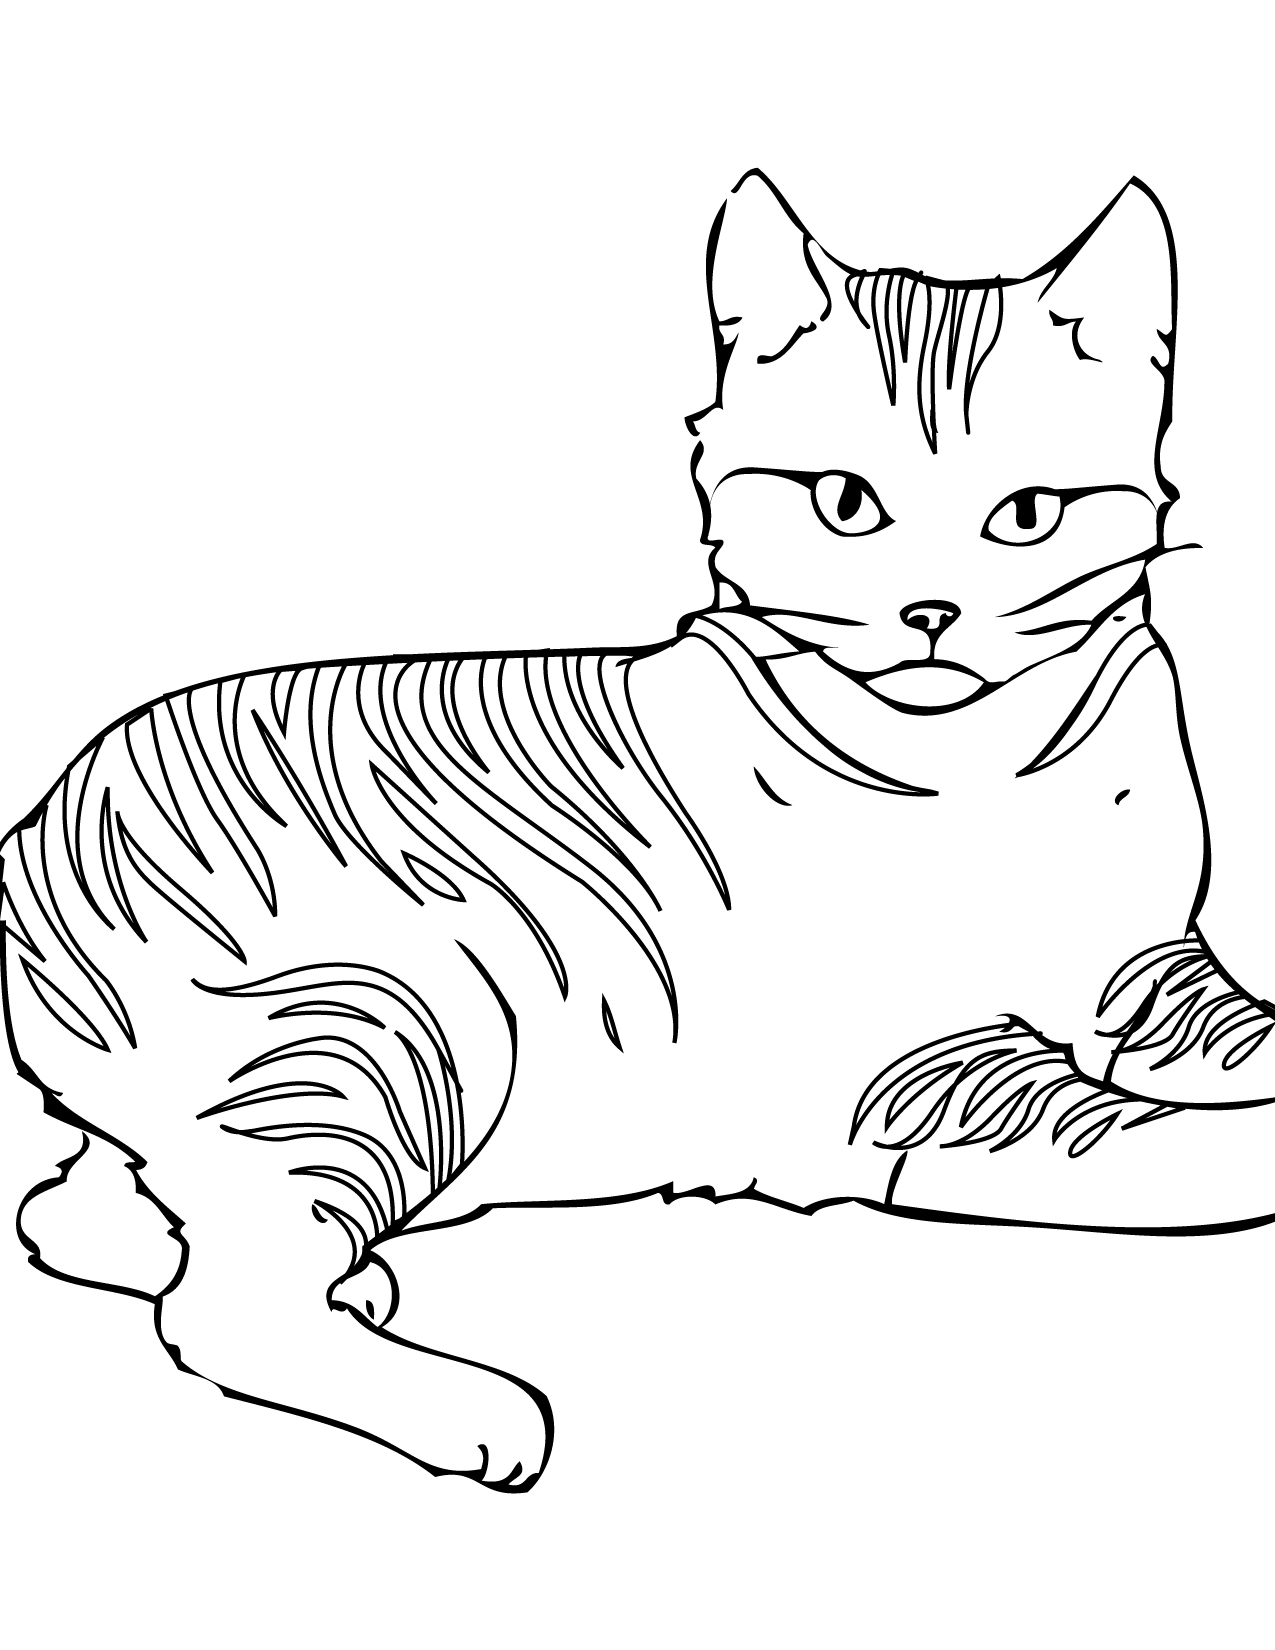 cat pages for coloring - photo#33